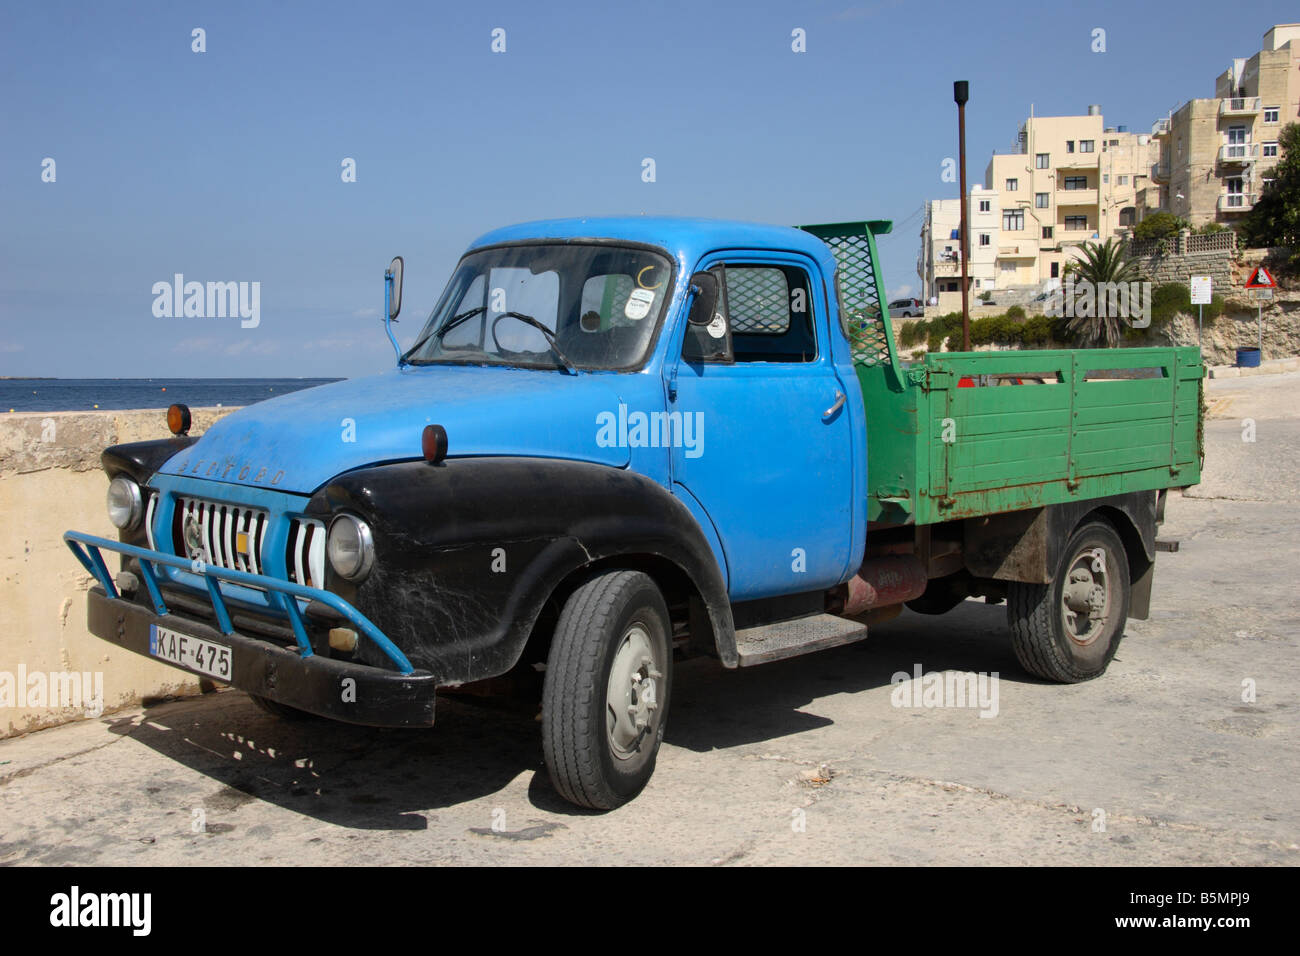 A vintage 'Bedford Truck' standing on the quayside at 'St Paul's Bay' in Malta. - Stock Image